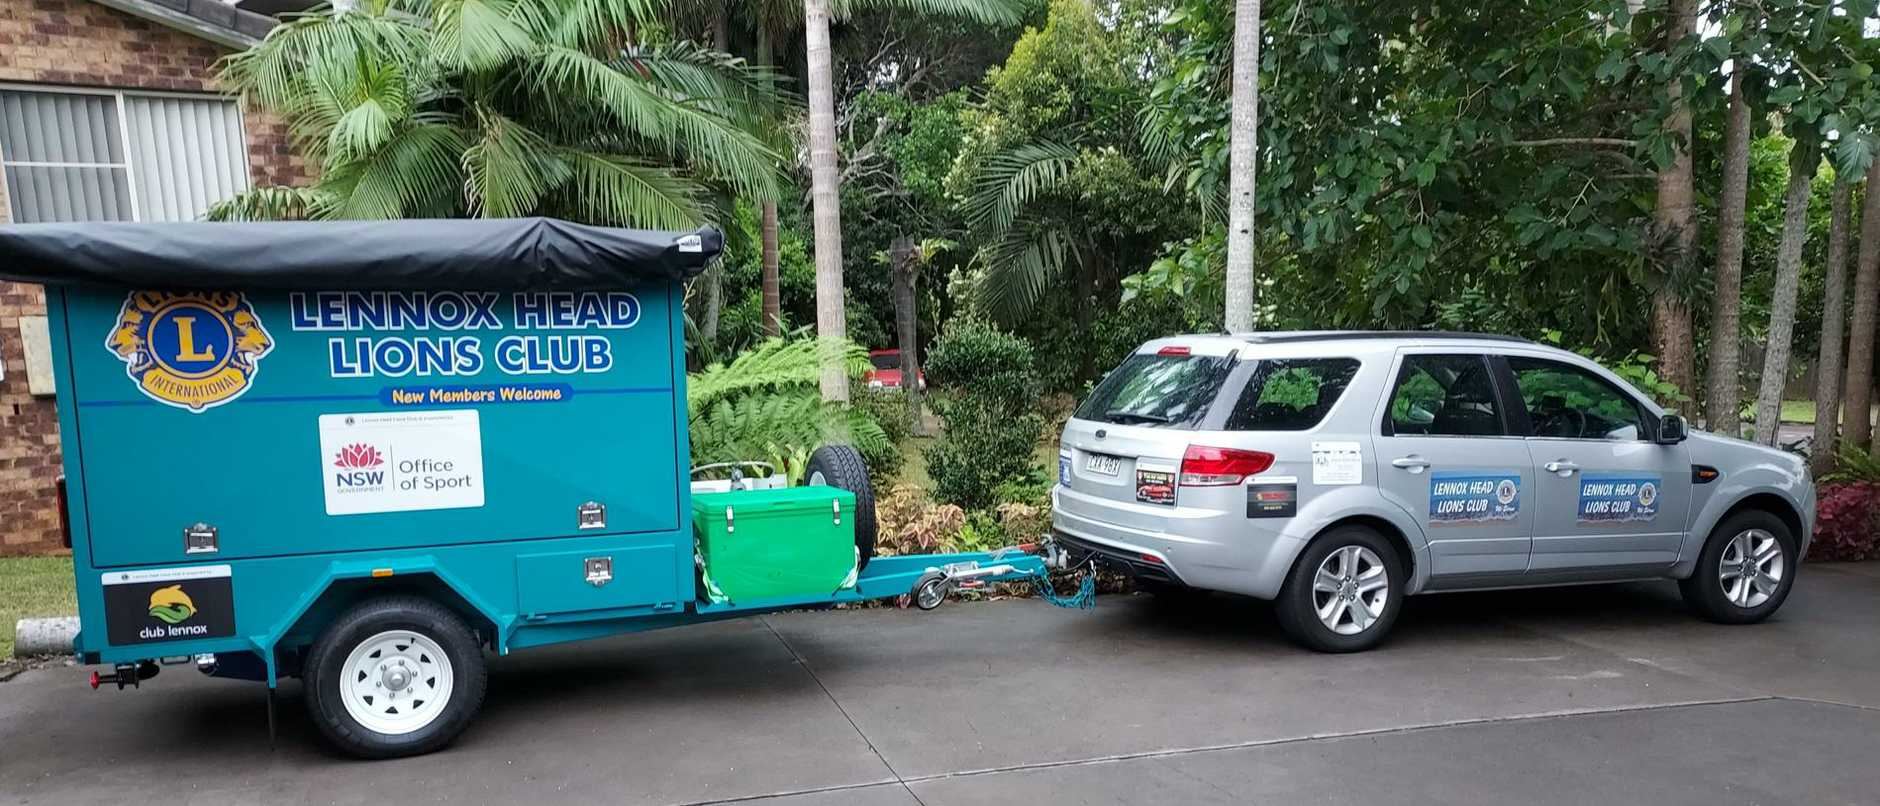 The Lennox Head Lions Club's sausage sizzle trailer needs a place to park inside a shed.